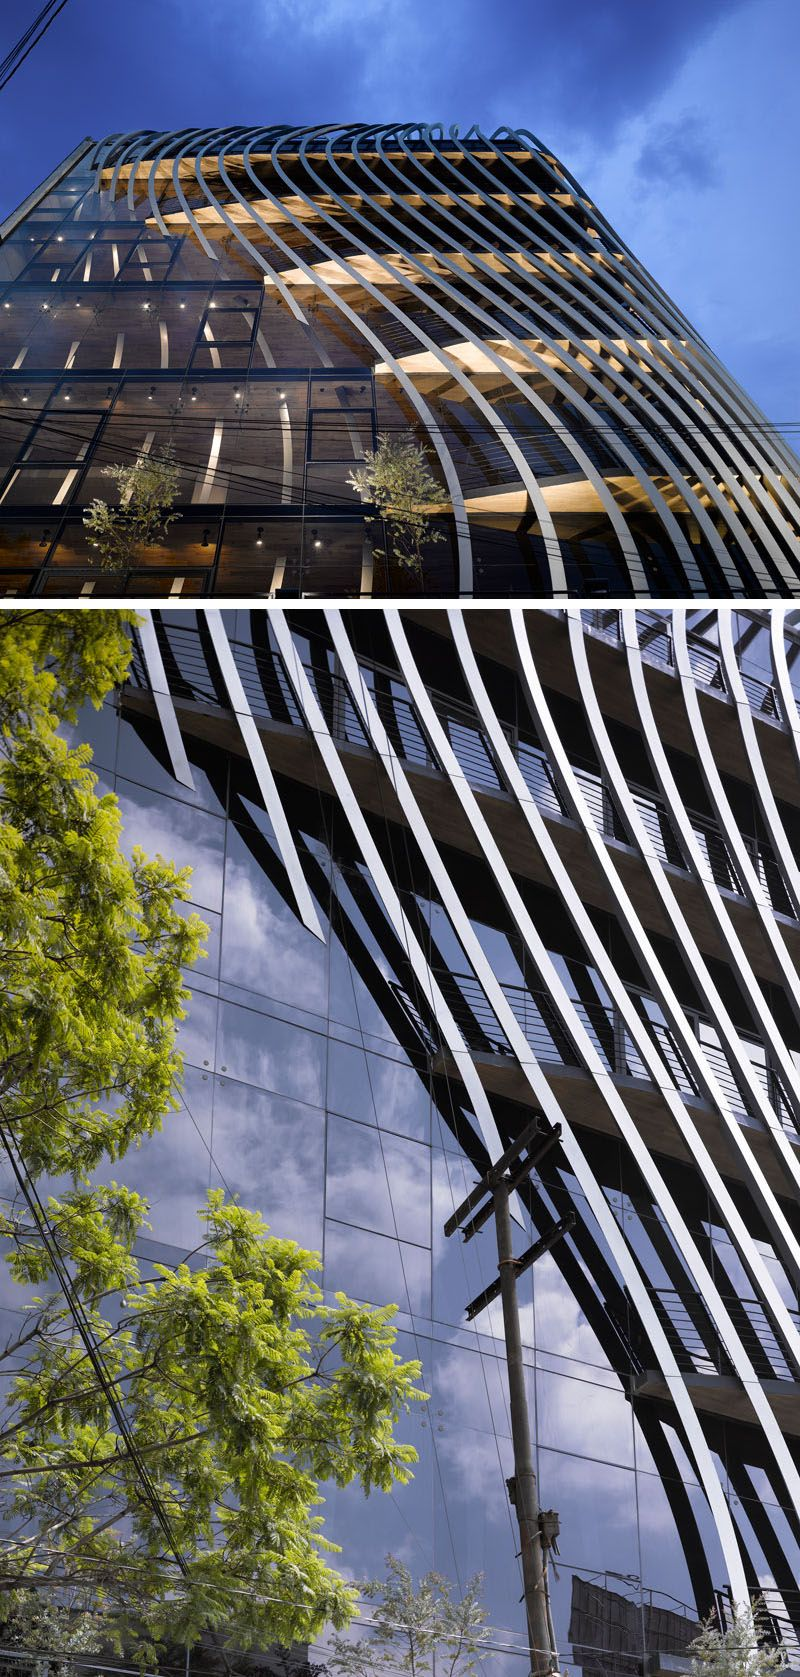 272 metal fins are featured throughout this new commercial building